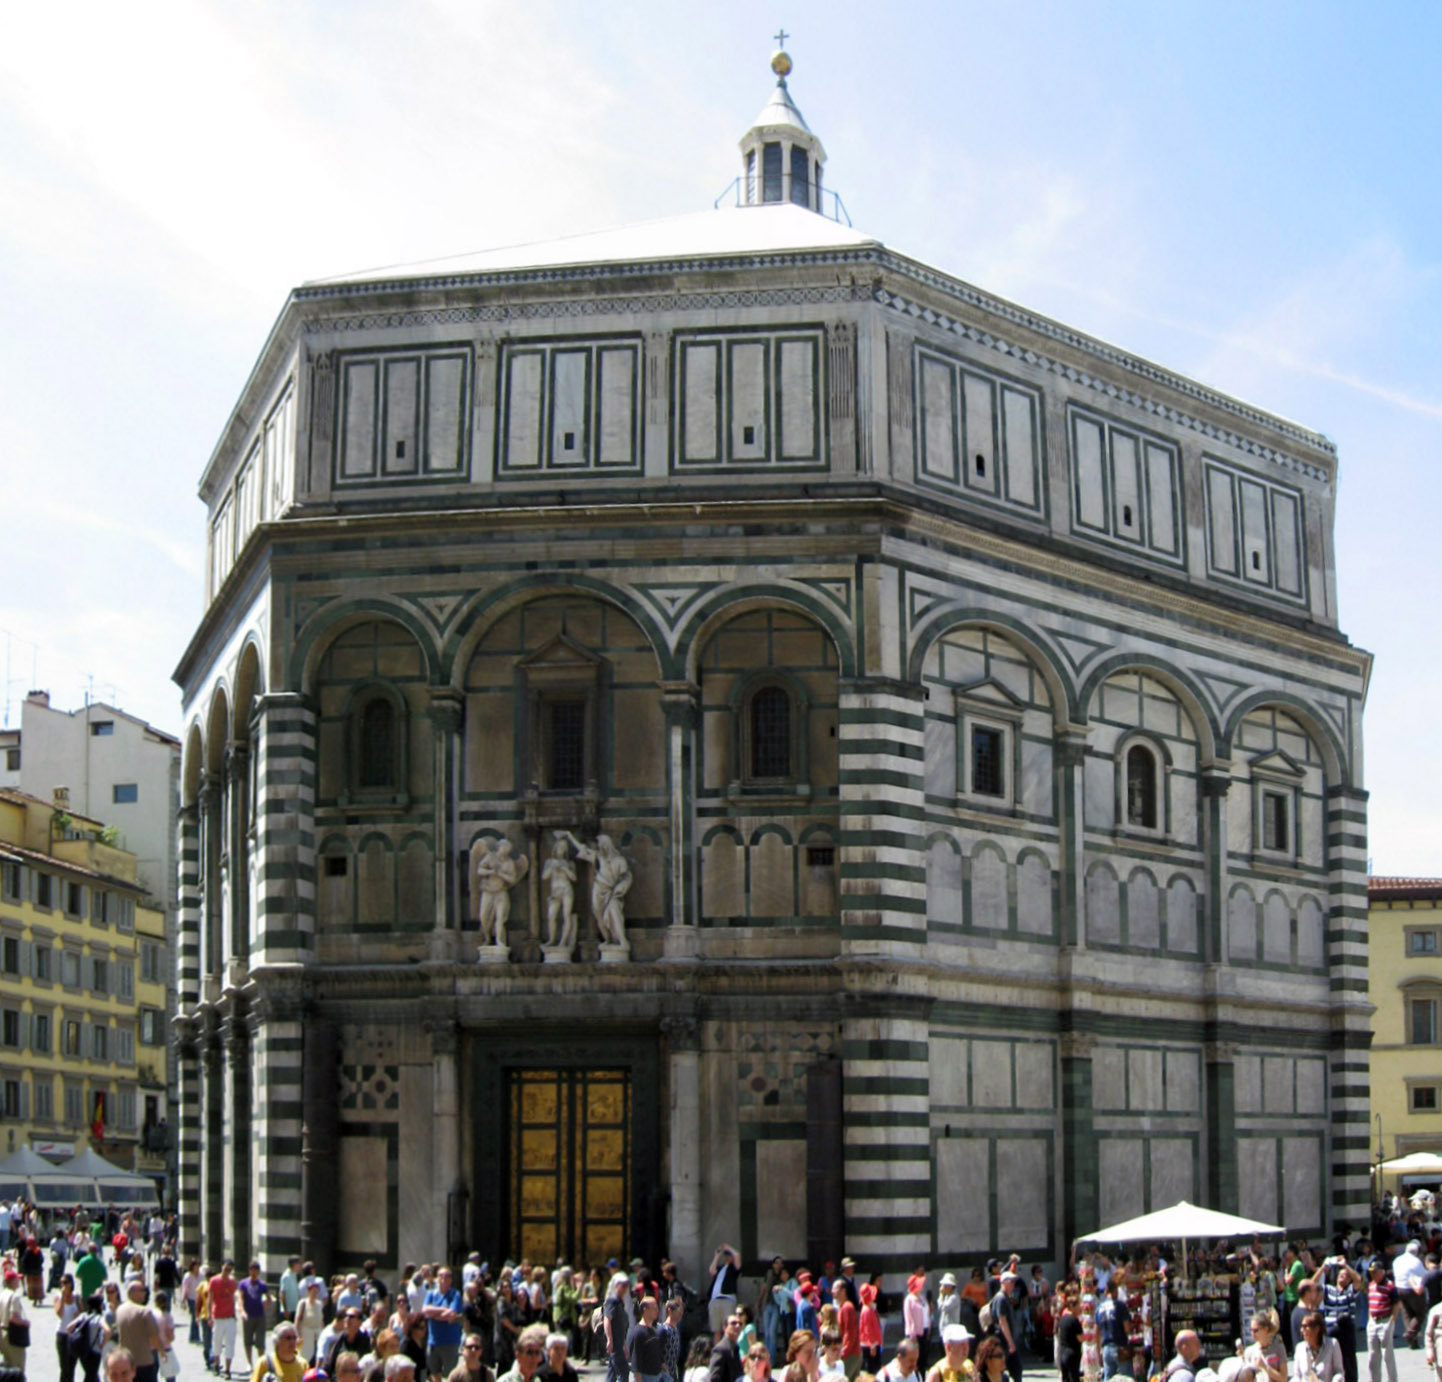 The Baptistry of St. John in Florence.